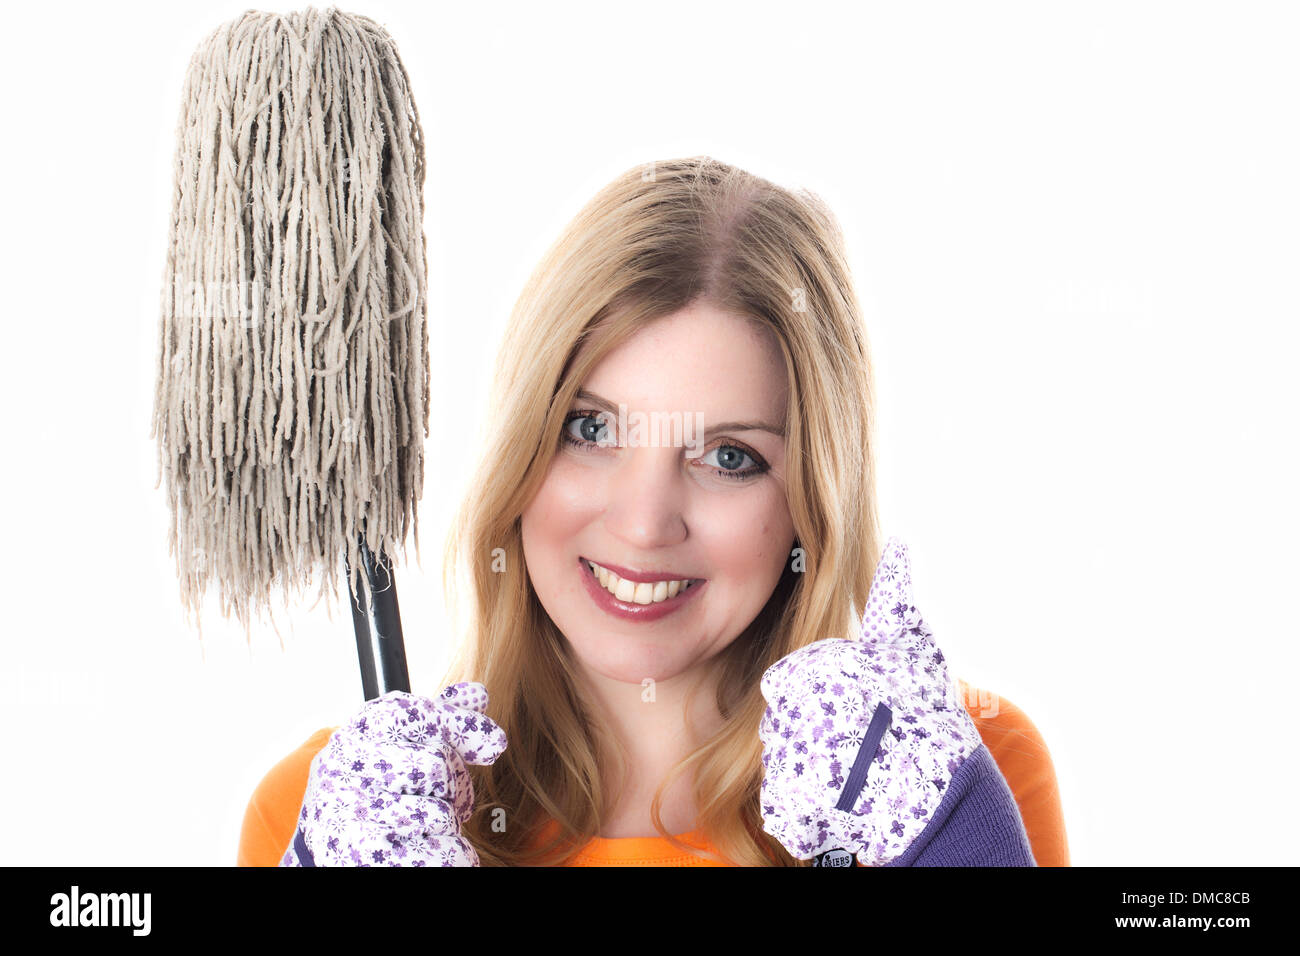 Young Woman Holding a Mop - Stock Image